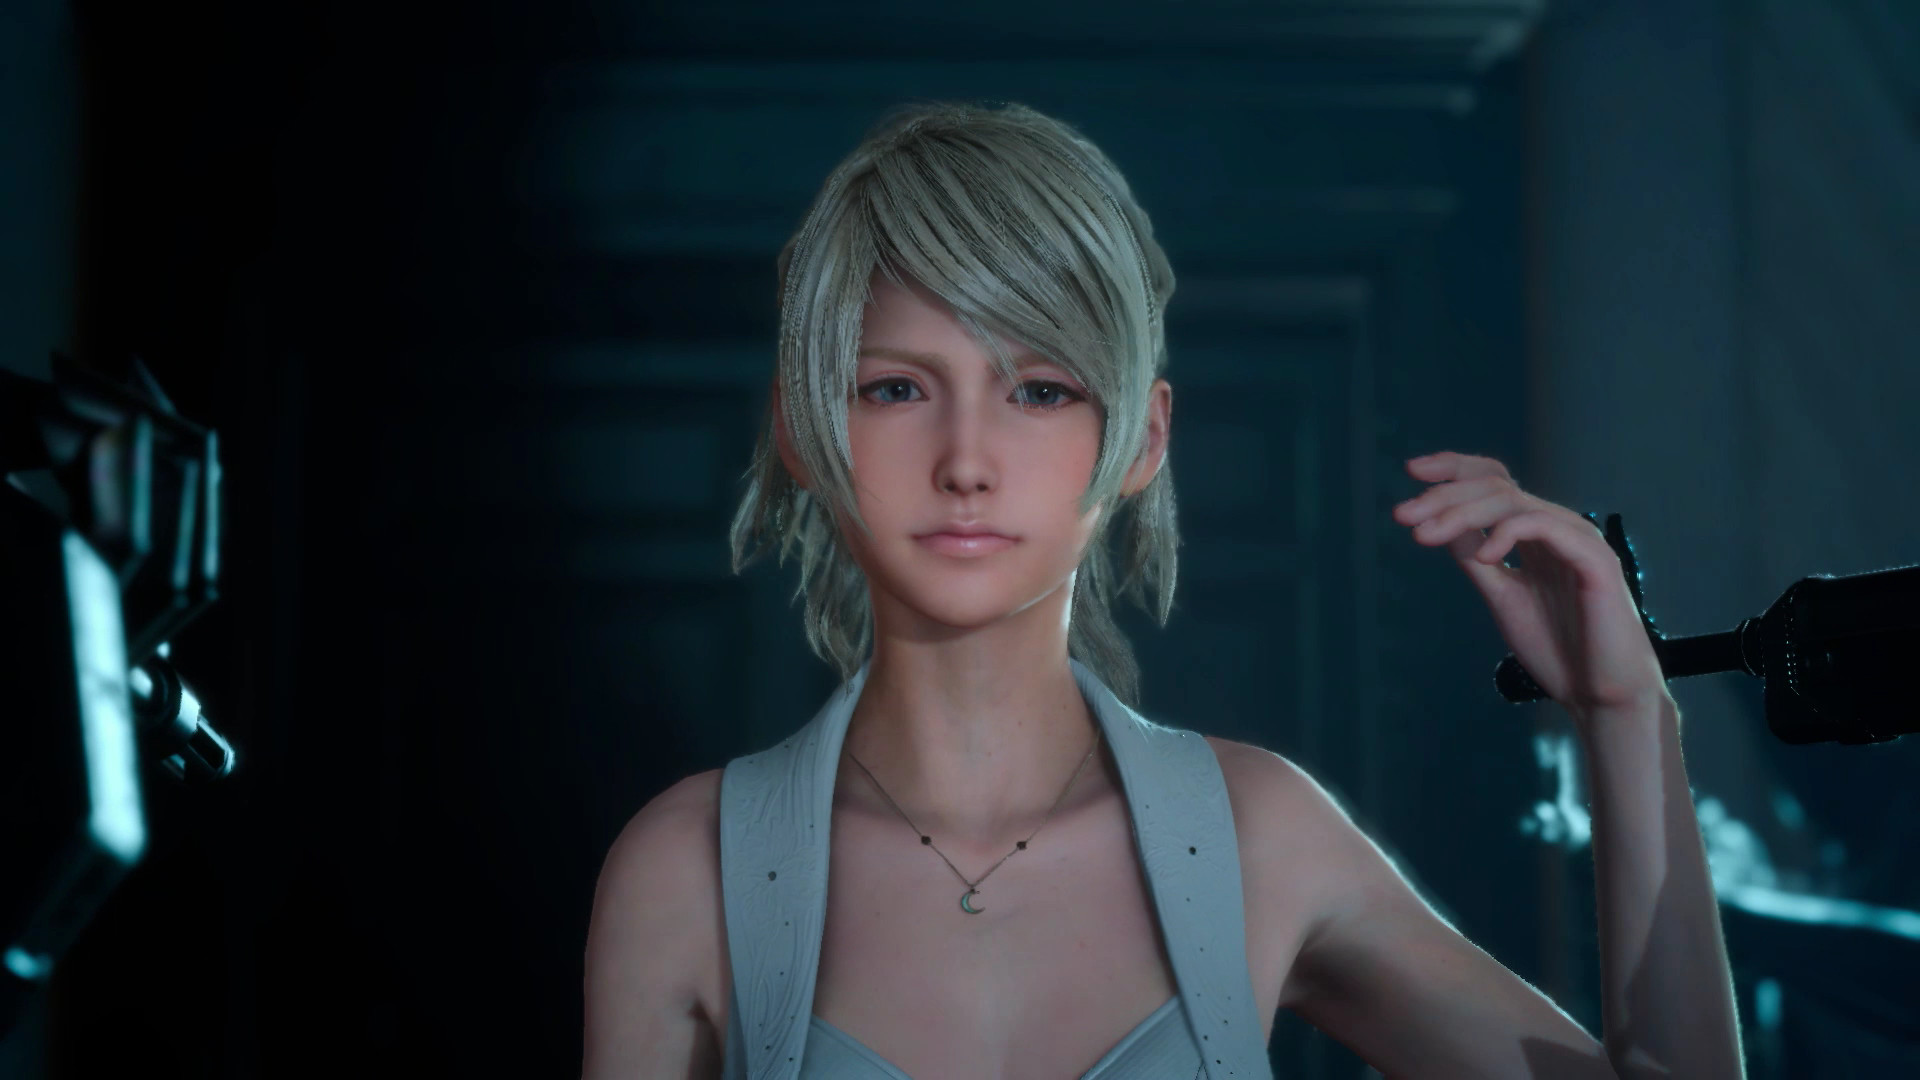 Some Slight Changes Made To Lunas Face In Newer Builds Of FFXV